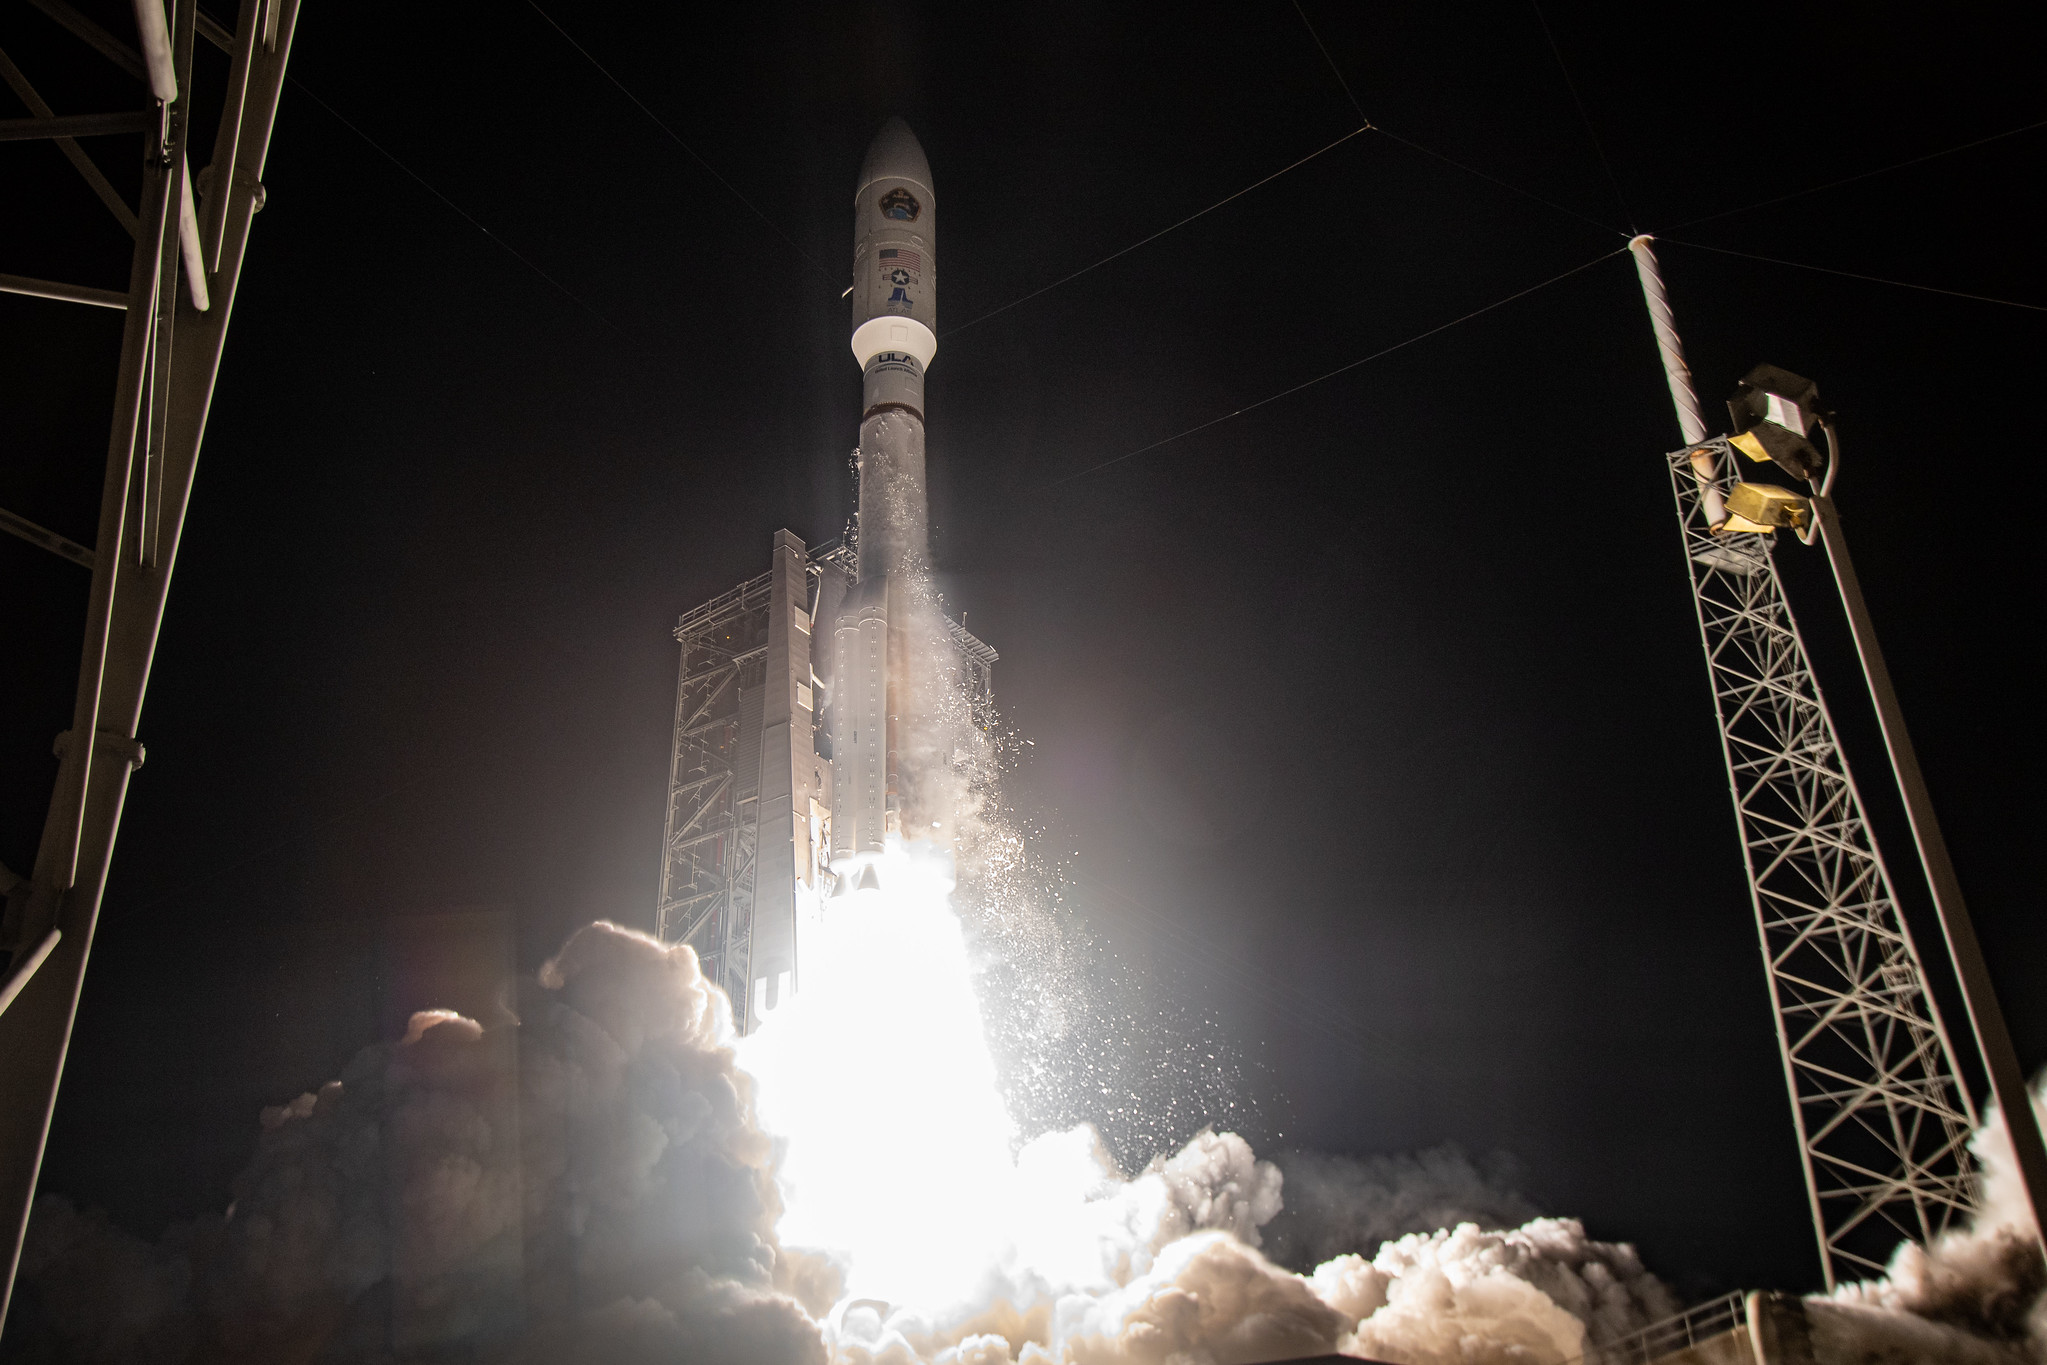 Air Force Cubesat Successfully Deployed From Atlas 5 Upper Stage